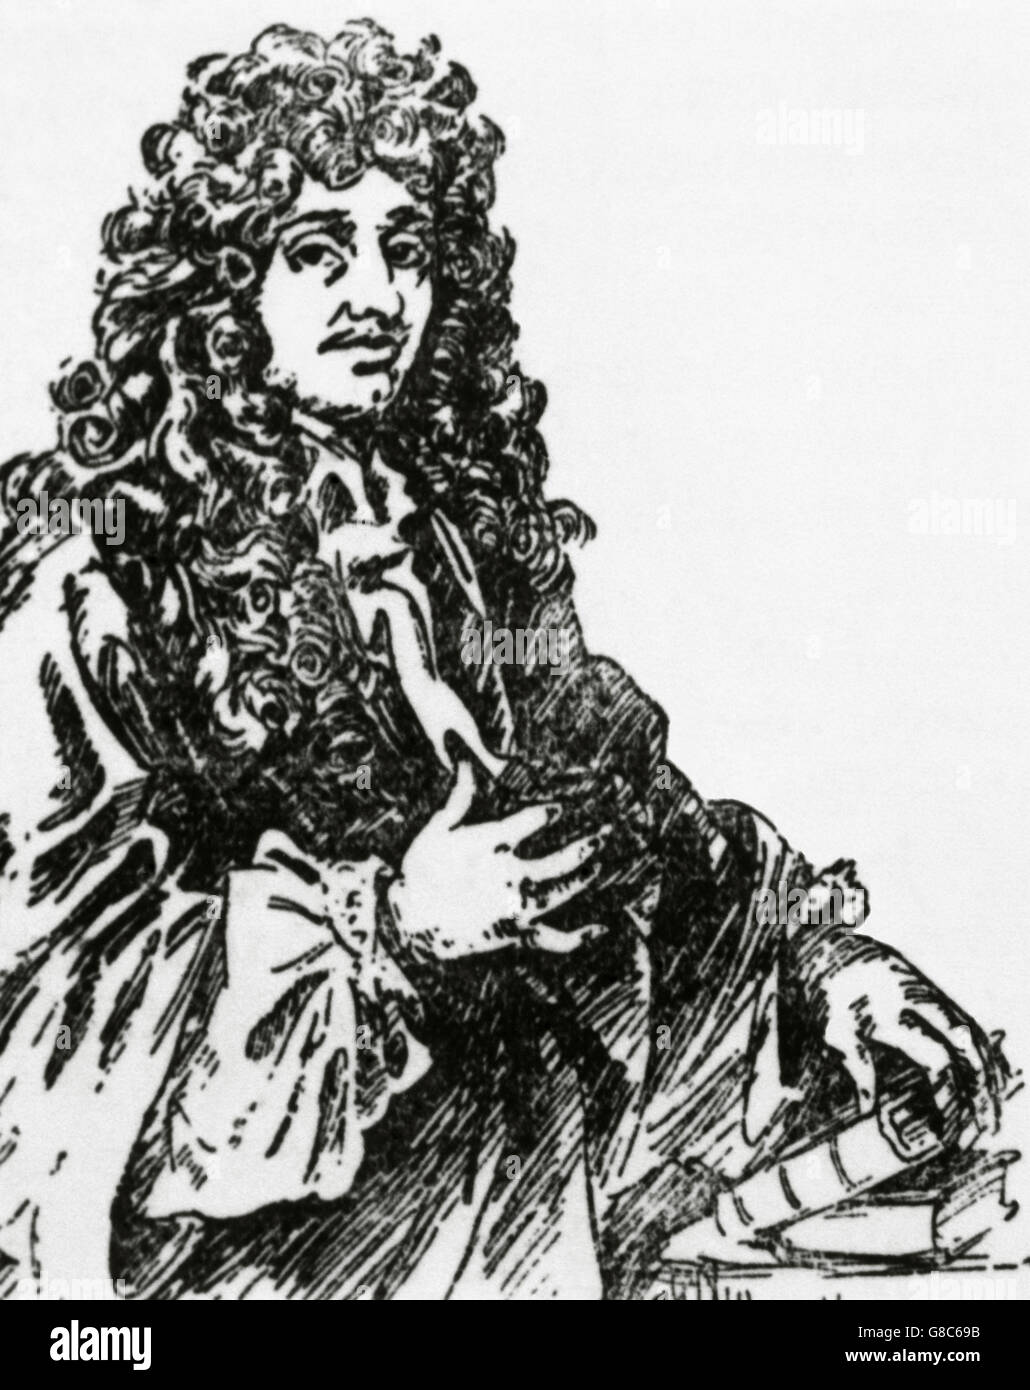 Christiaan Huygens (1629-1695). Dutch mathematician and scientist. He is known particularly as an astronomer, physicist, - Stock Image